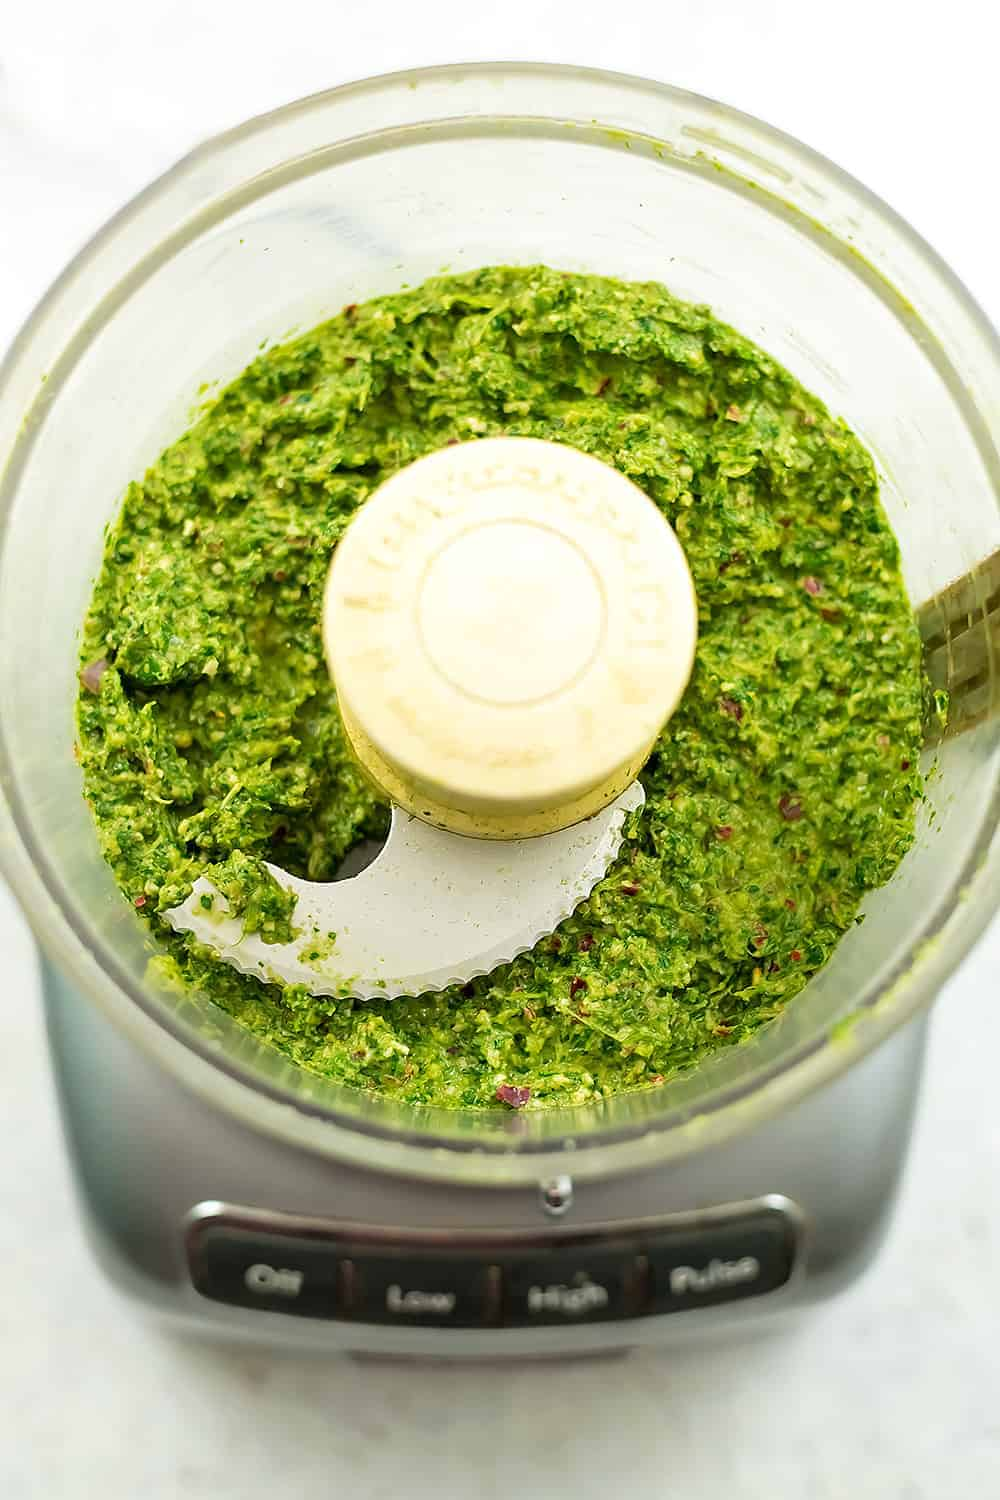 Chimichurri sauce after blending in the food processor.